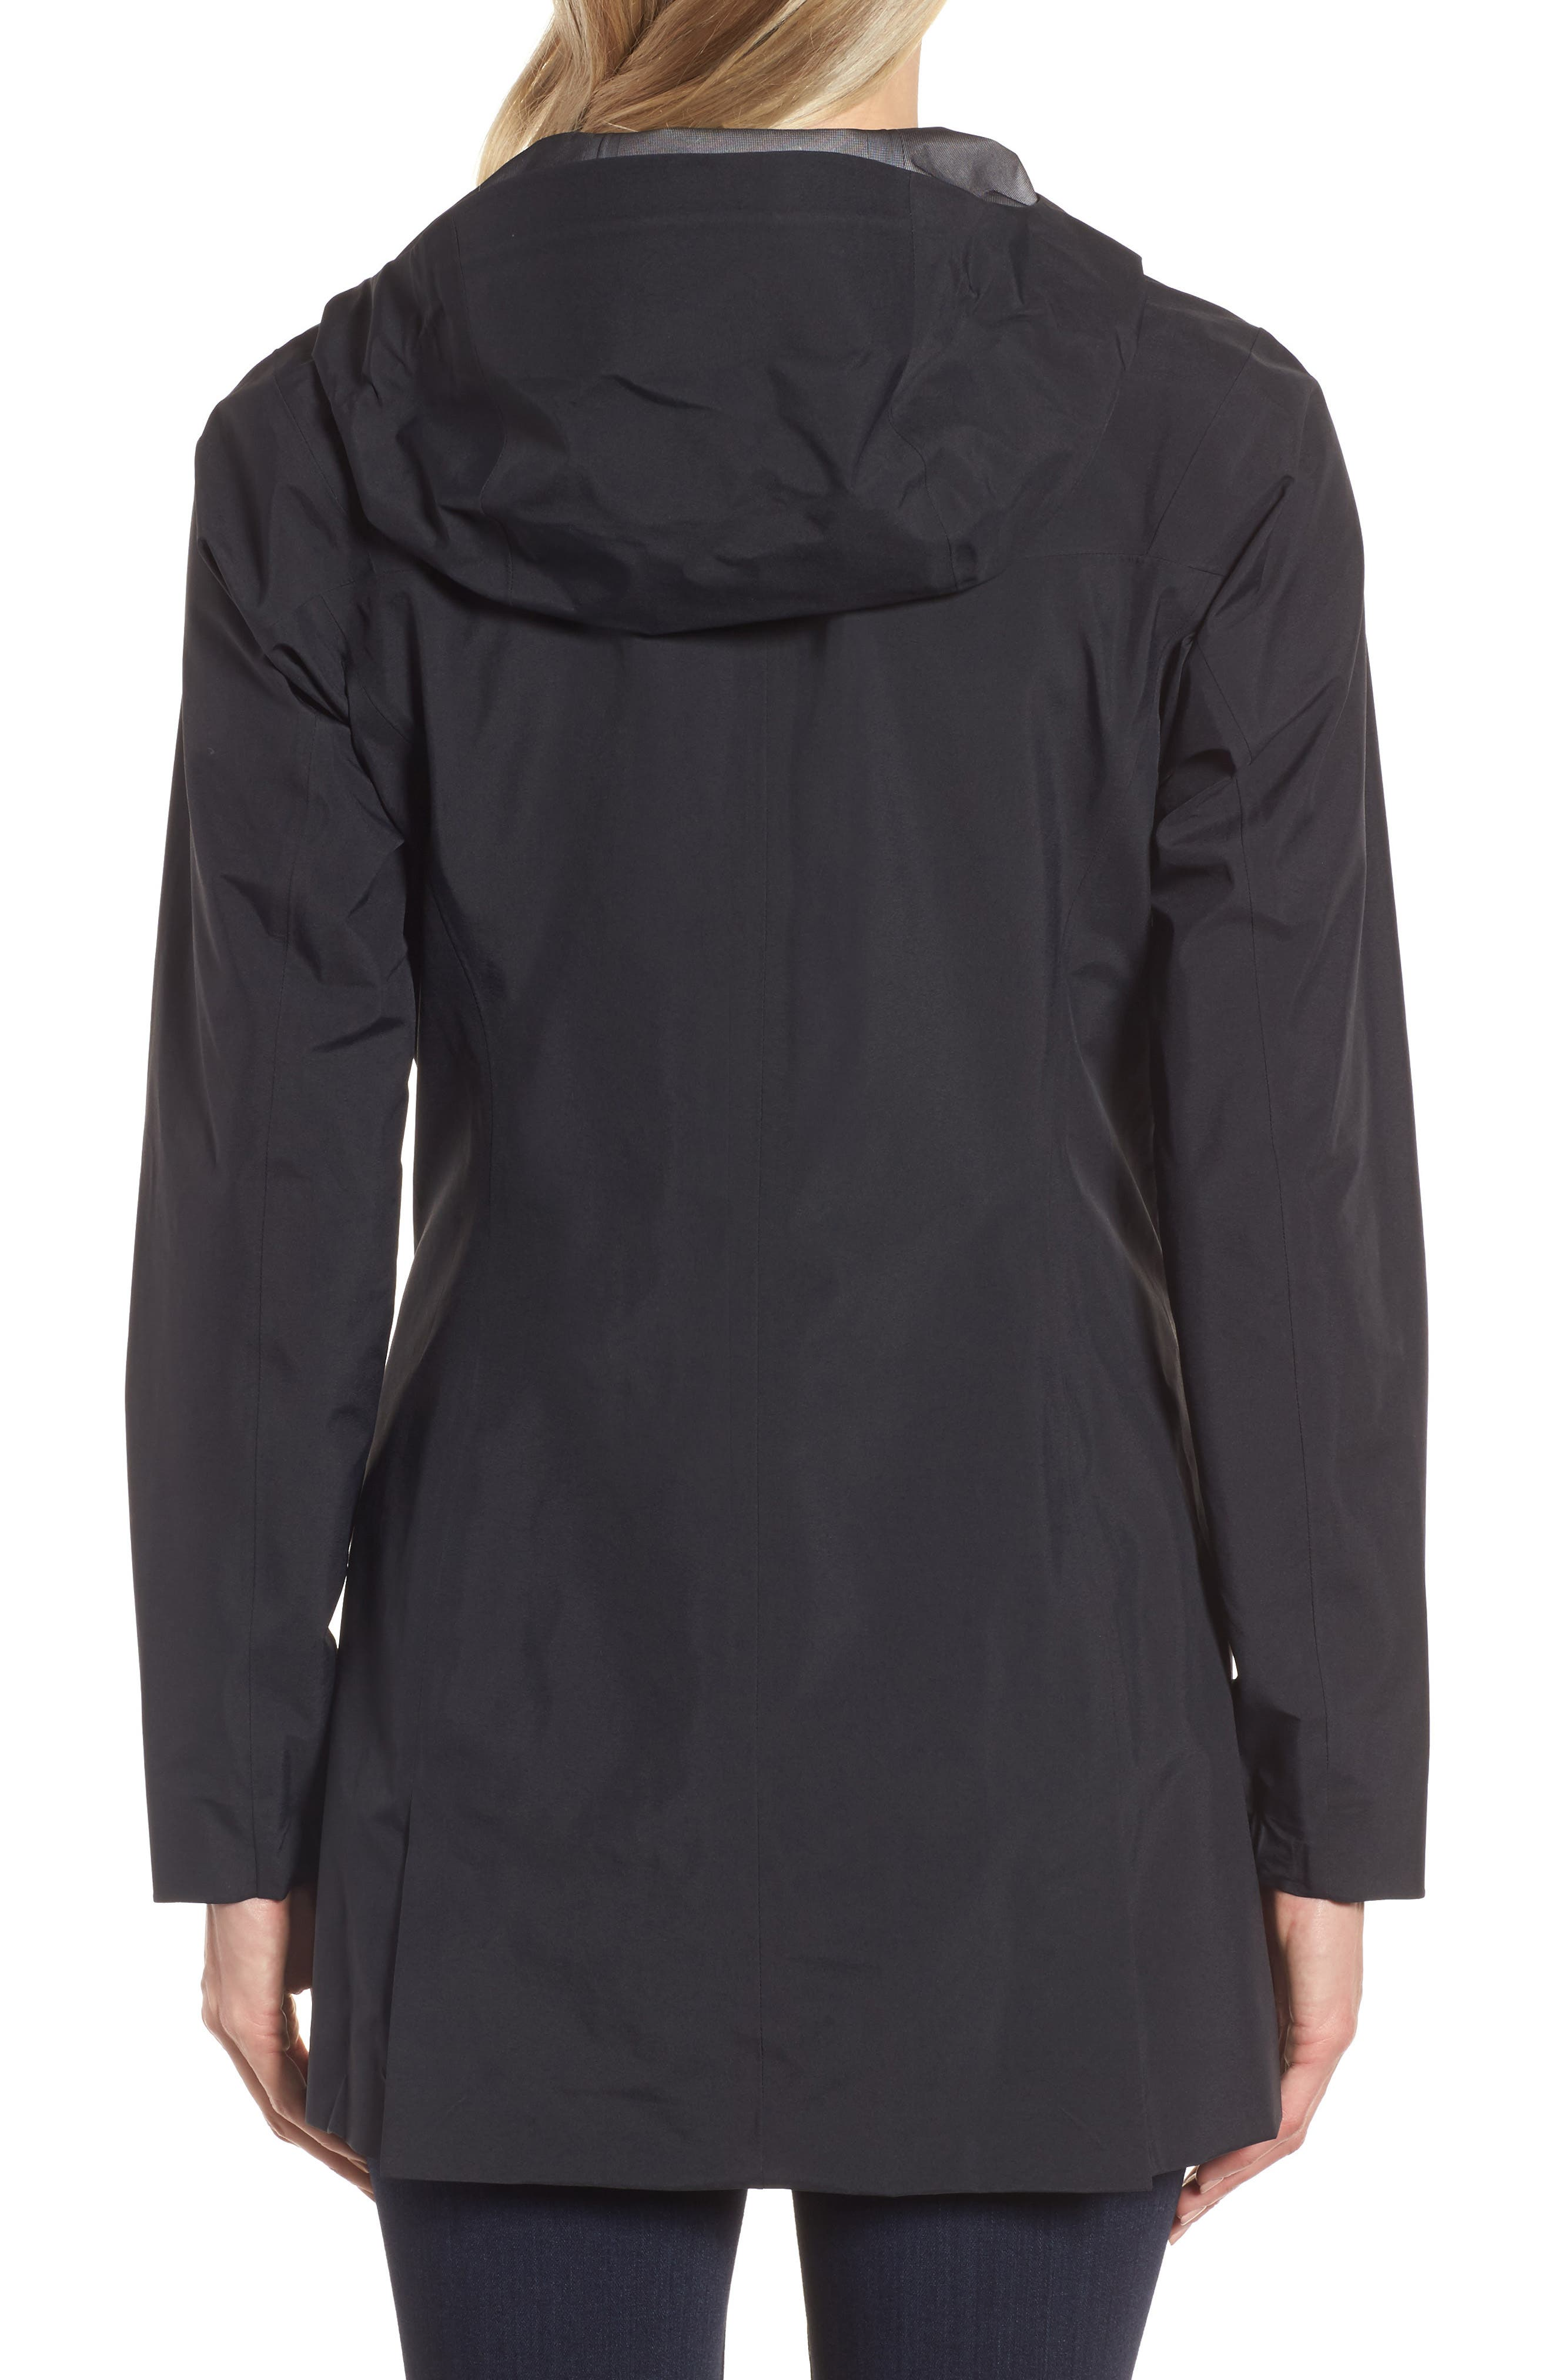 Codetta Waterproof Relaxed Fit Gore-Tex<sup>®</sup> 3L Rain Jacket,                             Alternate thumbnail 2, color,                             Black